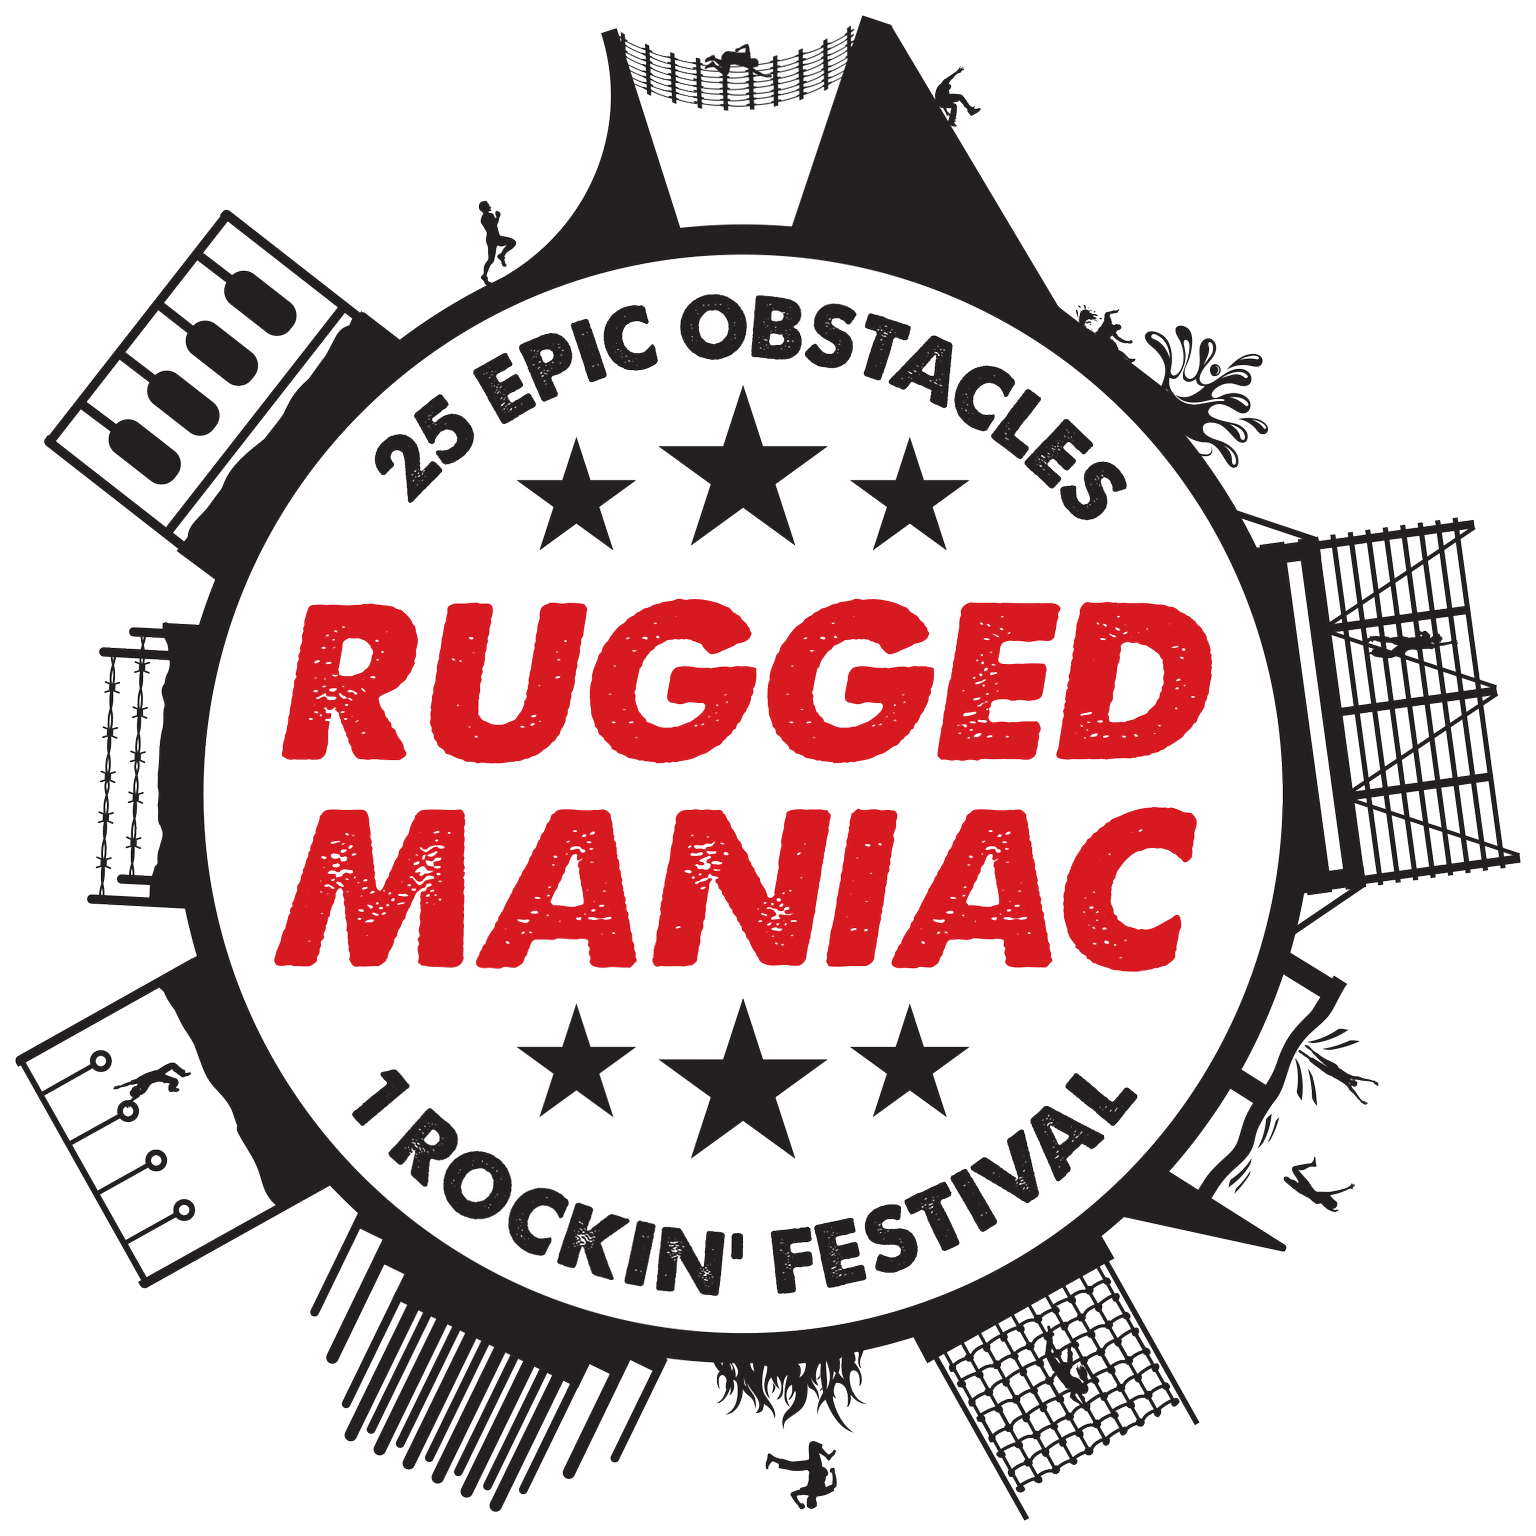 Phoenix Arizona Rugged Maniac Spring